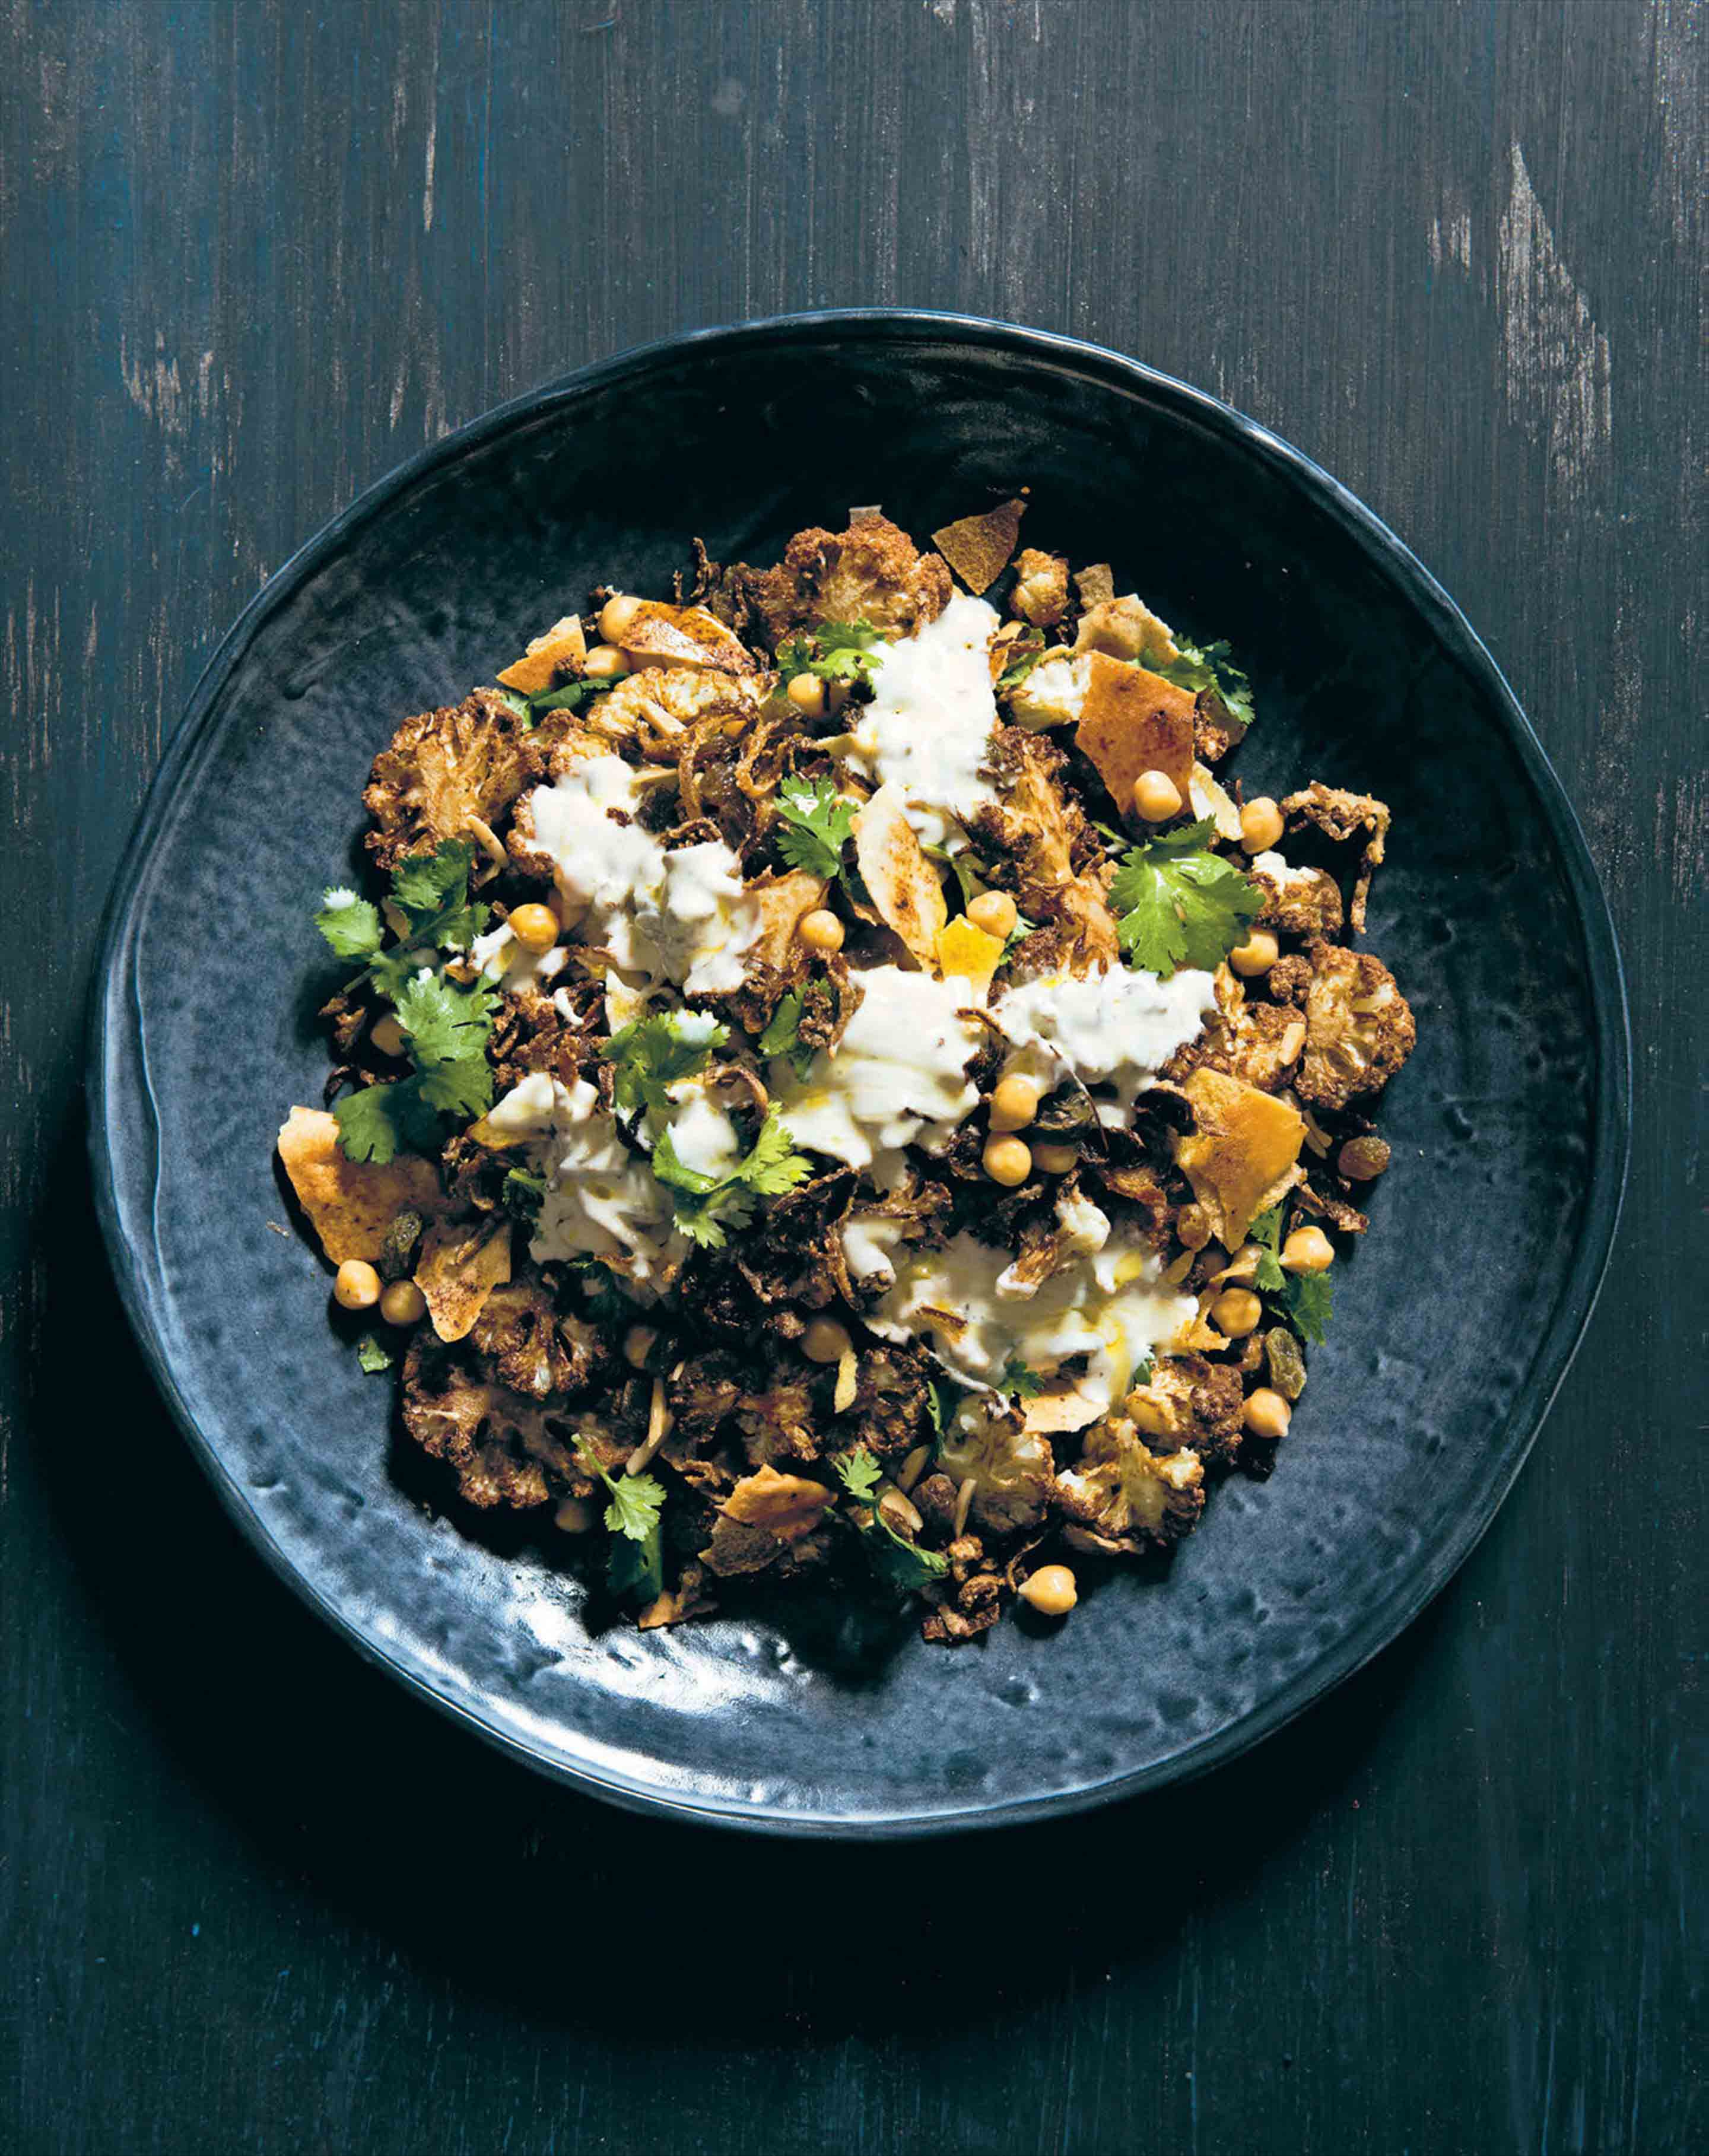 Cauliflower & chickpea salad with almonds, fried onion & sultanas